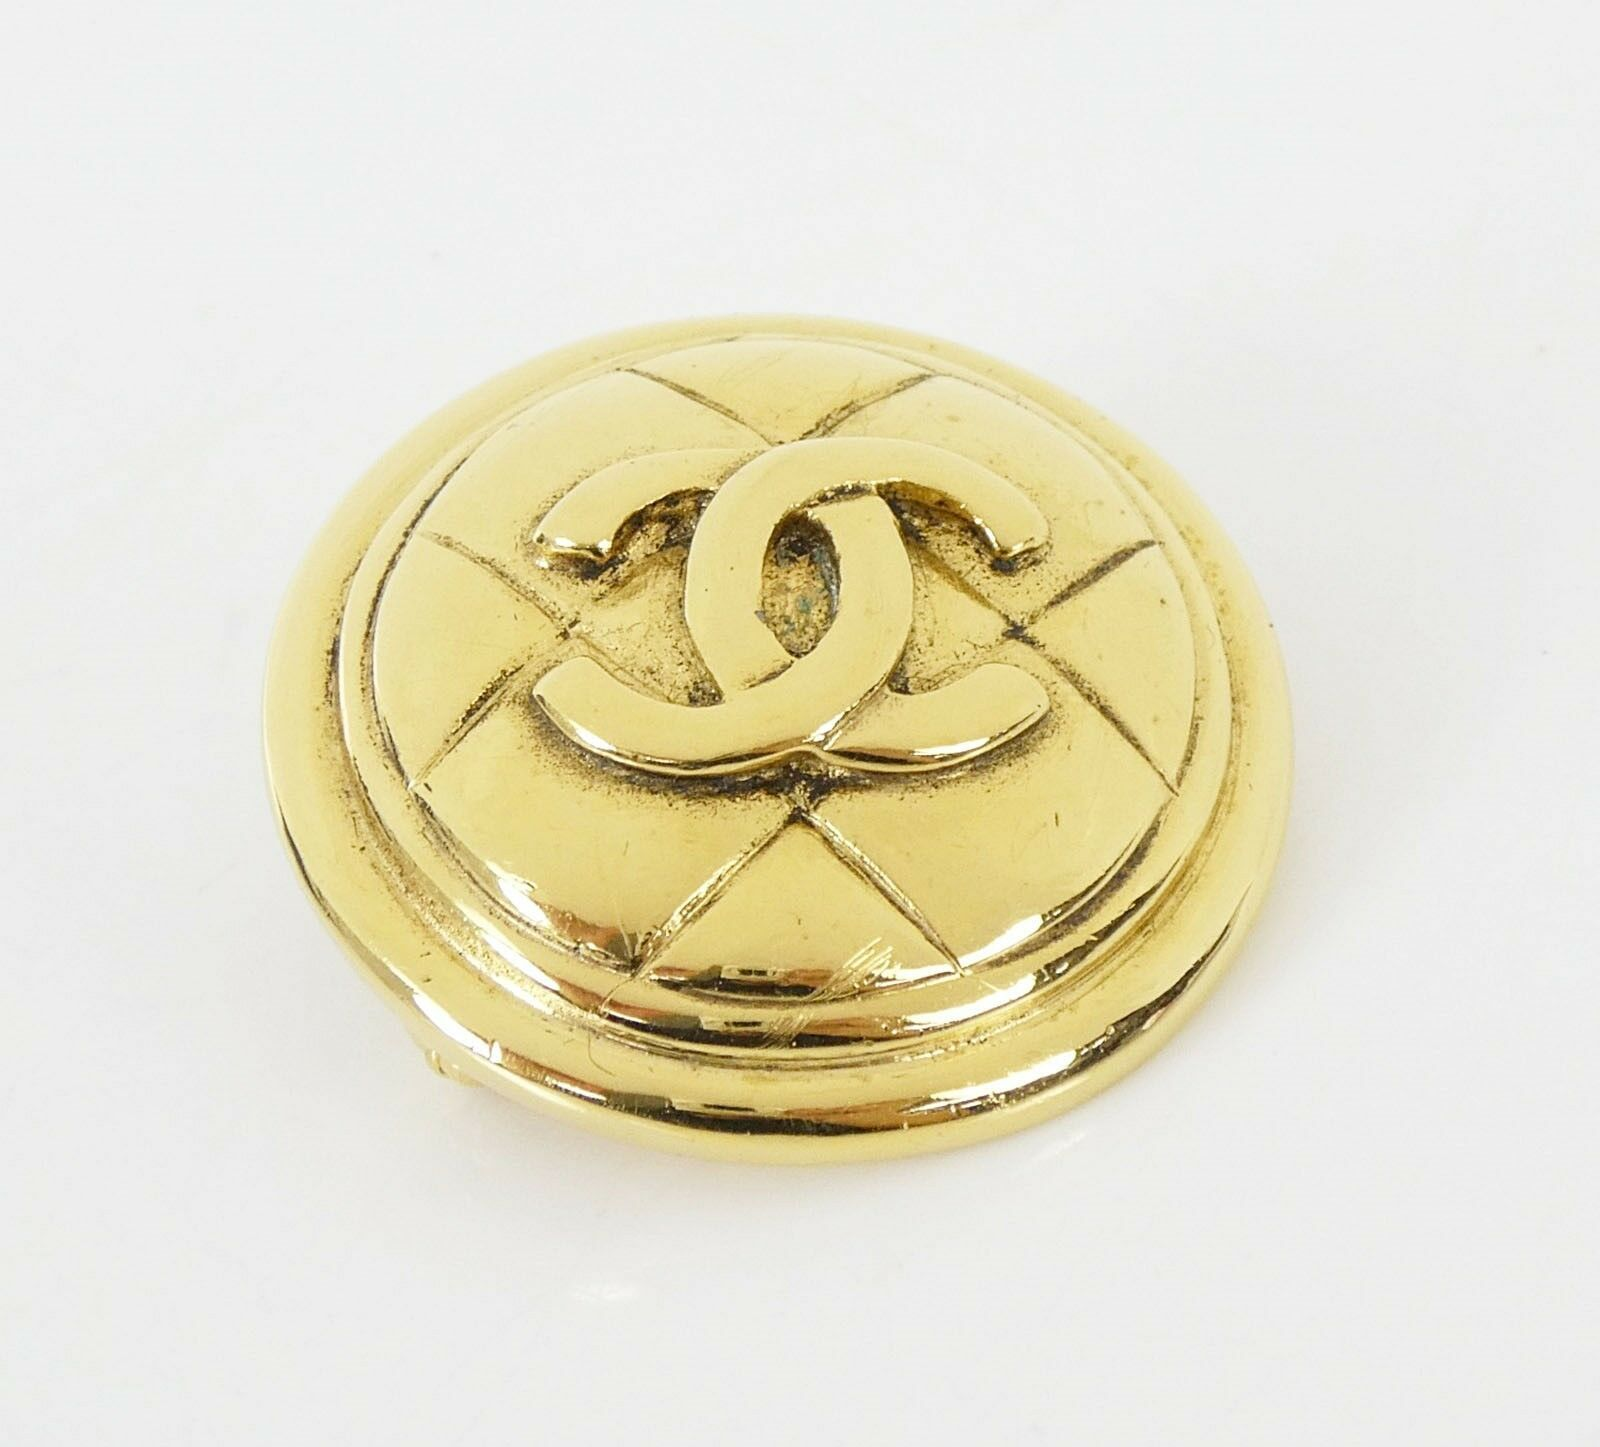 Auth Vintage CHANEL Goldtone Round Quilted CC Logo Brooch Pin w/ Box #29830